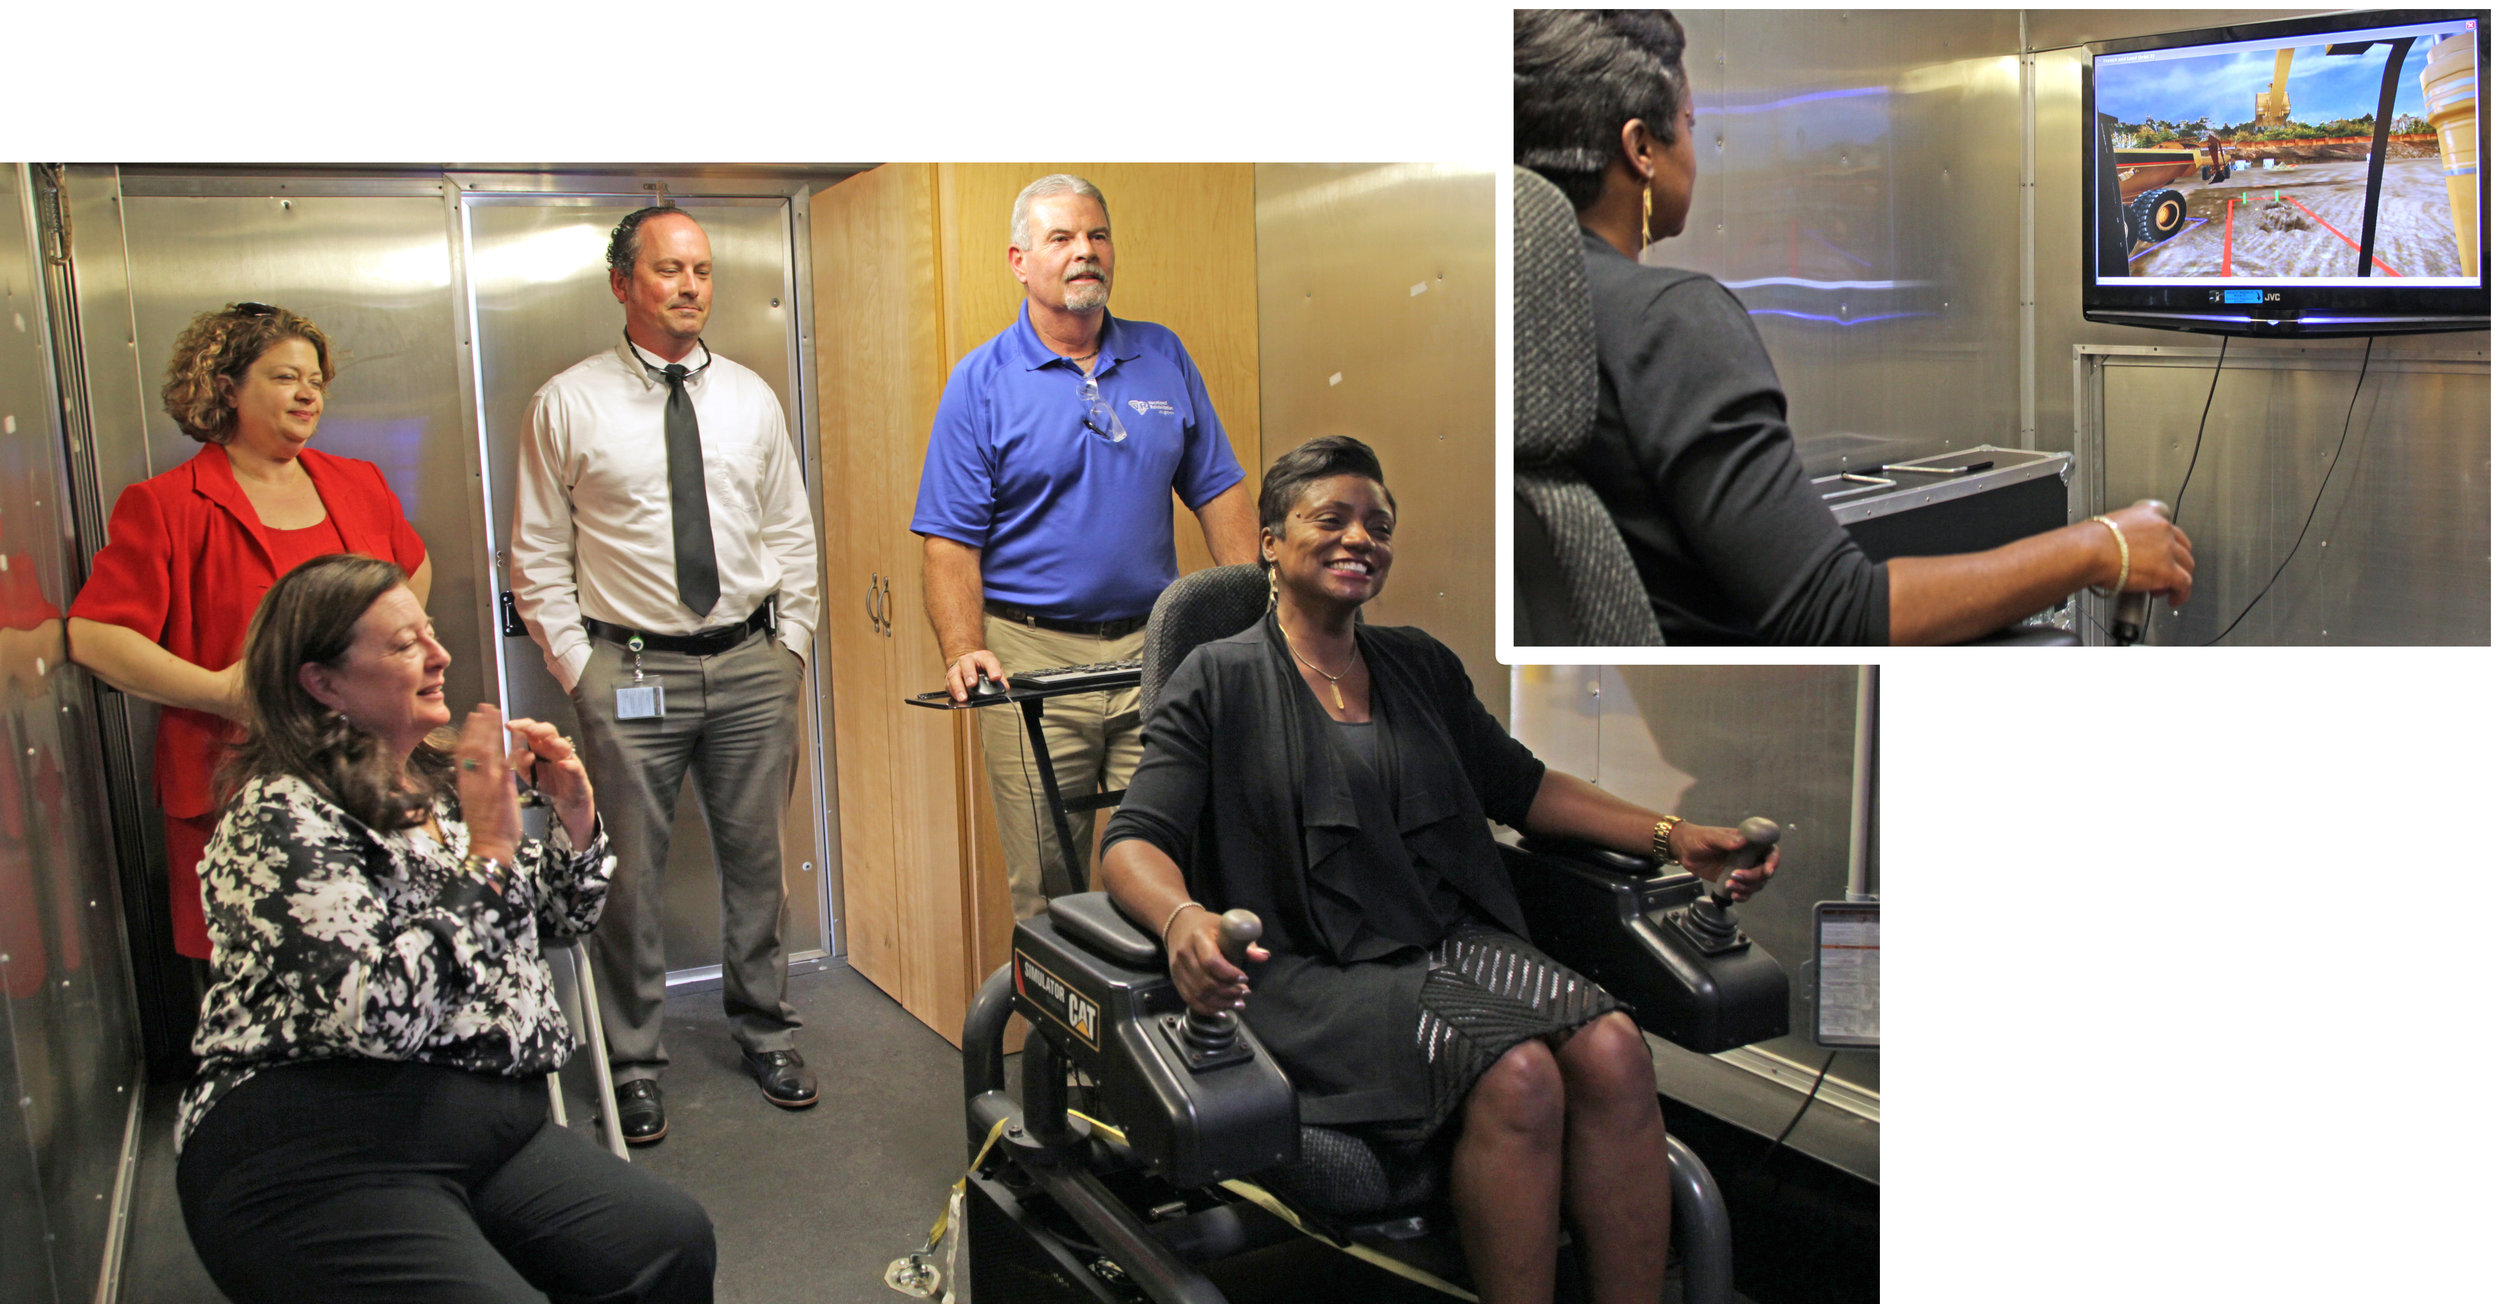 Jennie Thomas, Area Administrator; Dr. Roxzanne Breland, Agency Board Chair; Ryan Skinner Upstate Regional BDS; and Jayhue Weisner, Bryant Center Training Center Manager, watch as Interim Commissioner Felicia Johnson receives hands-on training in Sloan Construction's heavy equipment simulator.